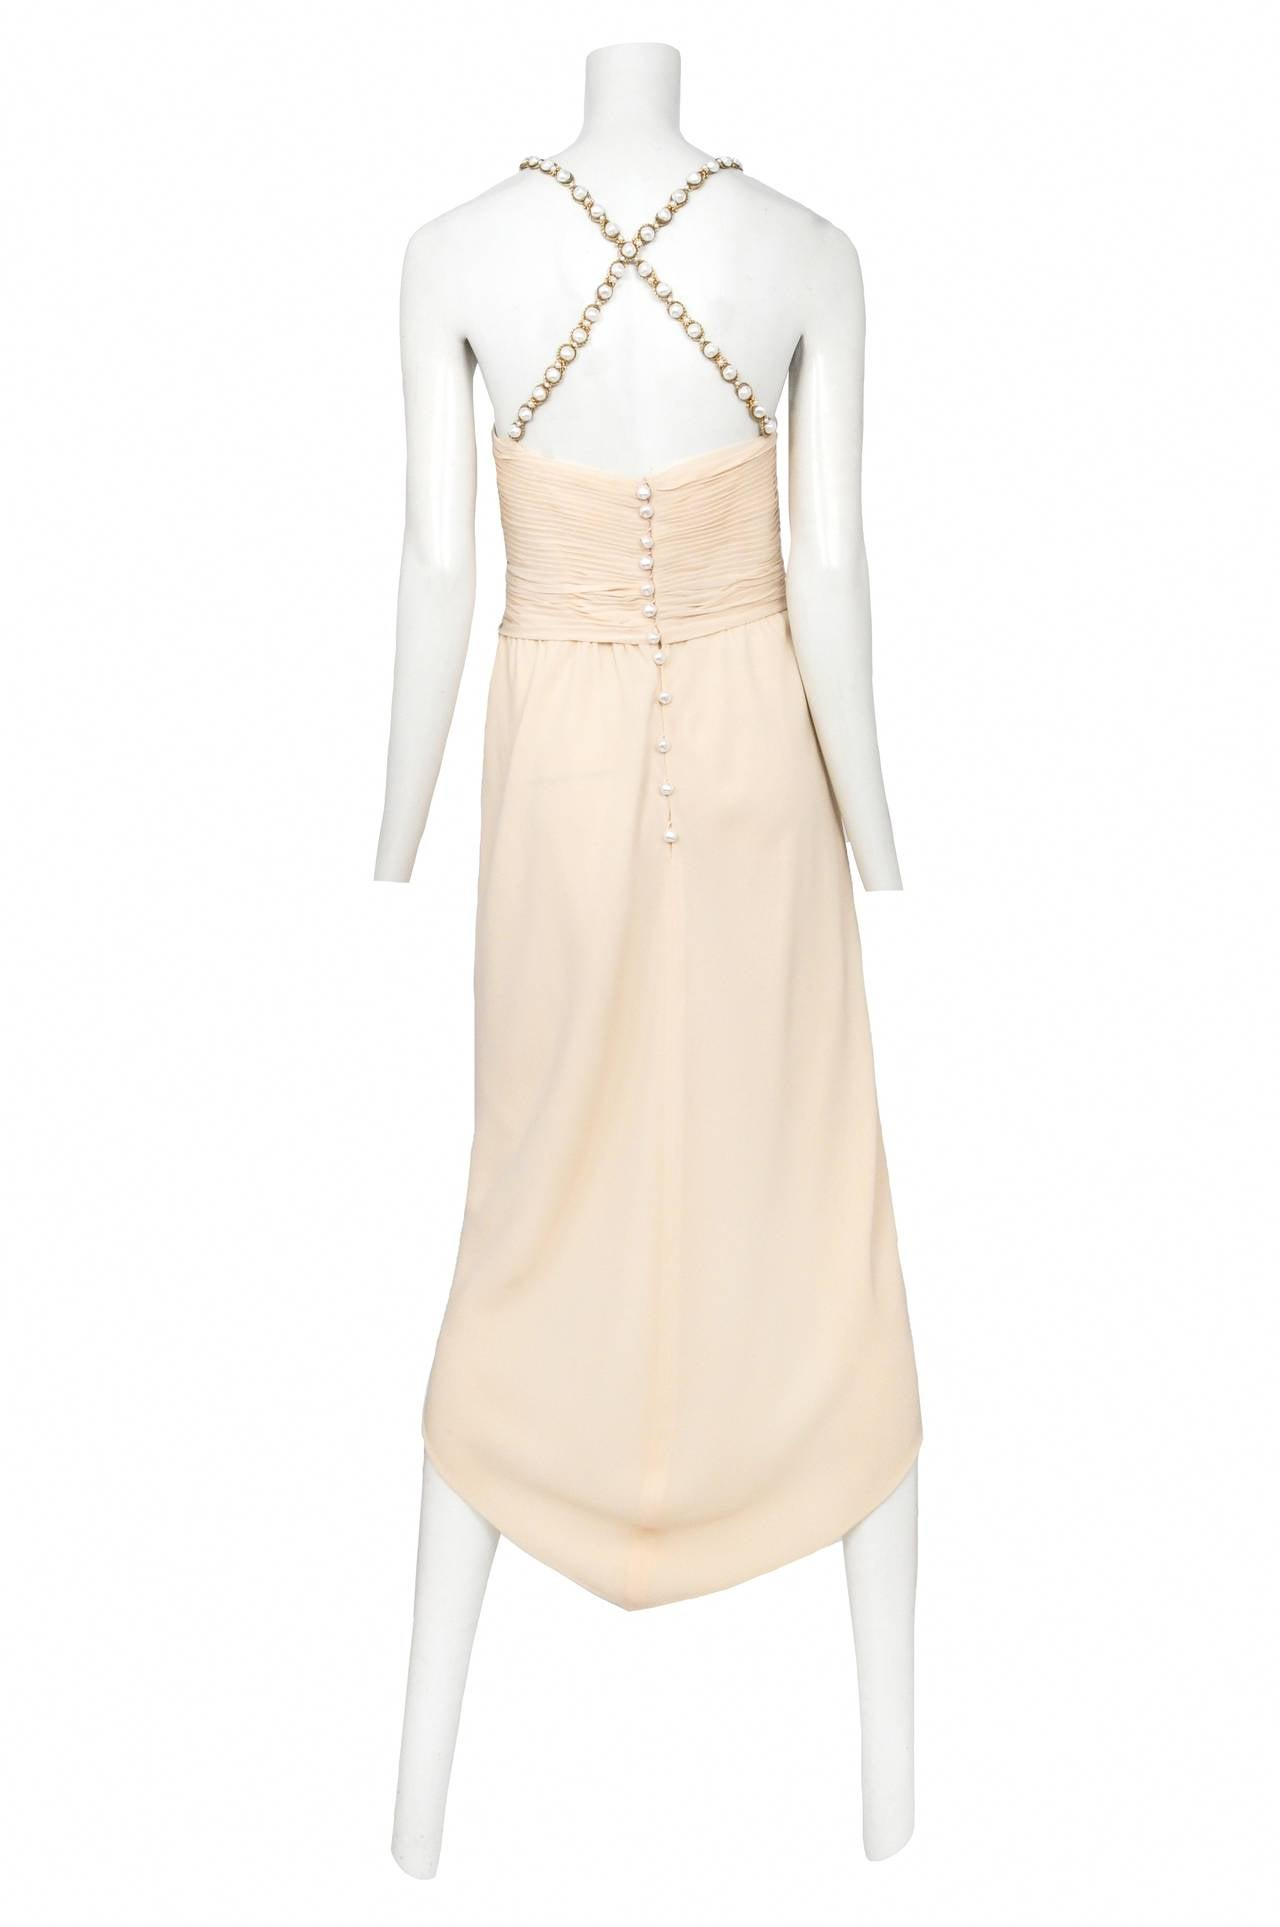 Chanel Cream Silk Pearl Strap Dress 2